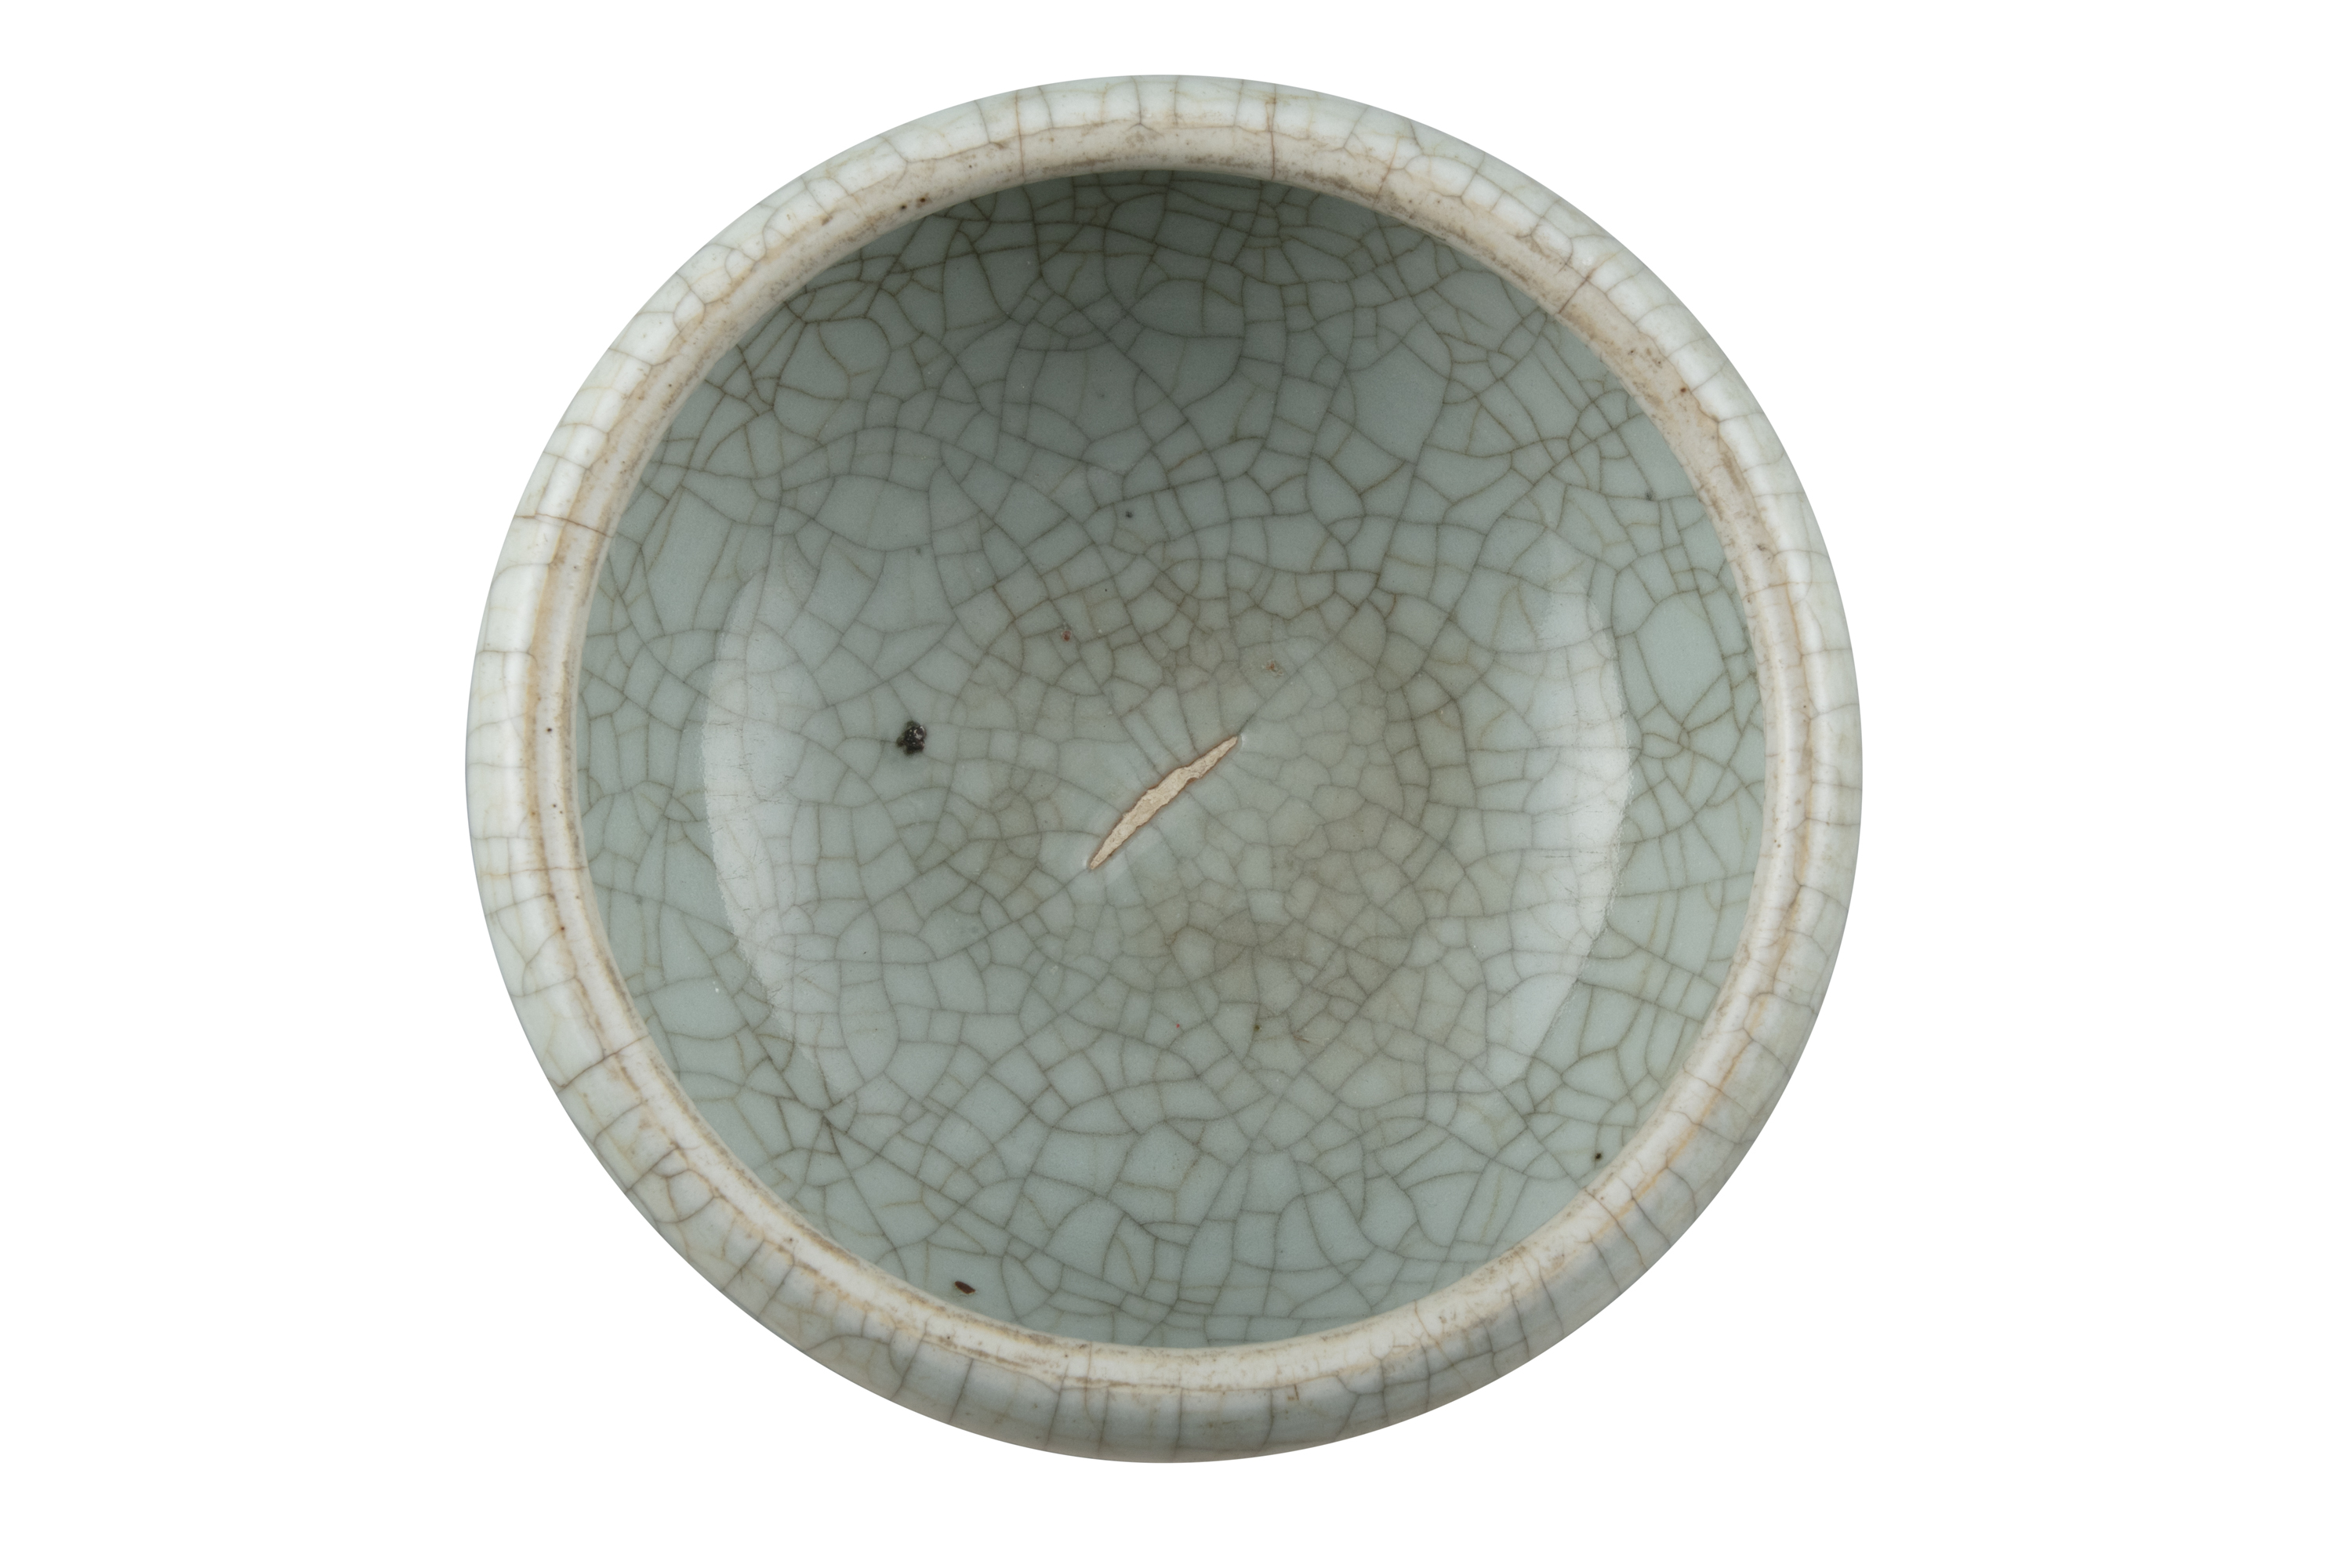 A GEYAO TYPE CRACKLED-CELADON GLAZED GLOBULAR INCENSE-BURNER China, Late Qing to Republican period - Image 8 of 11